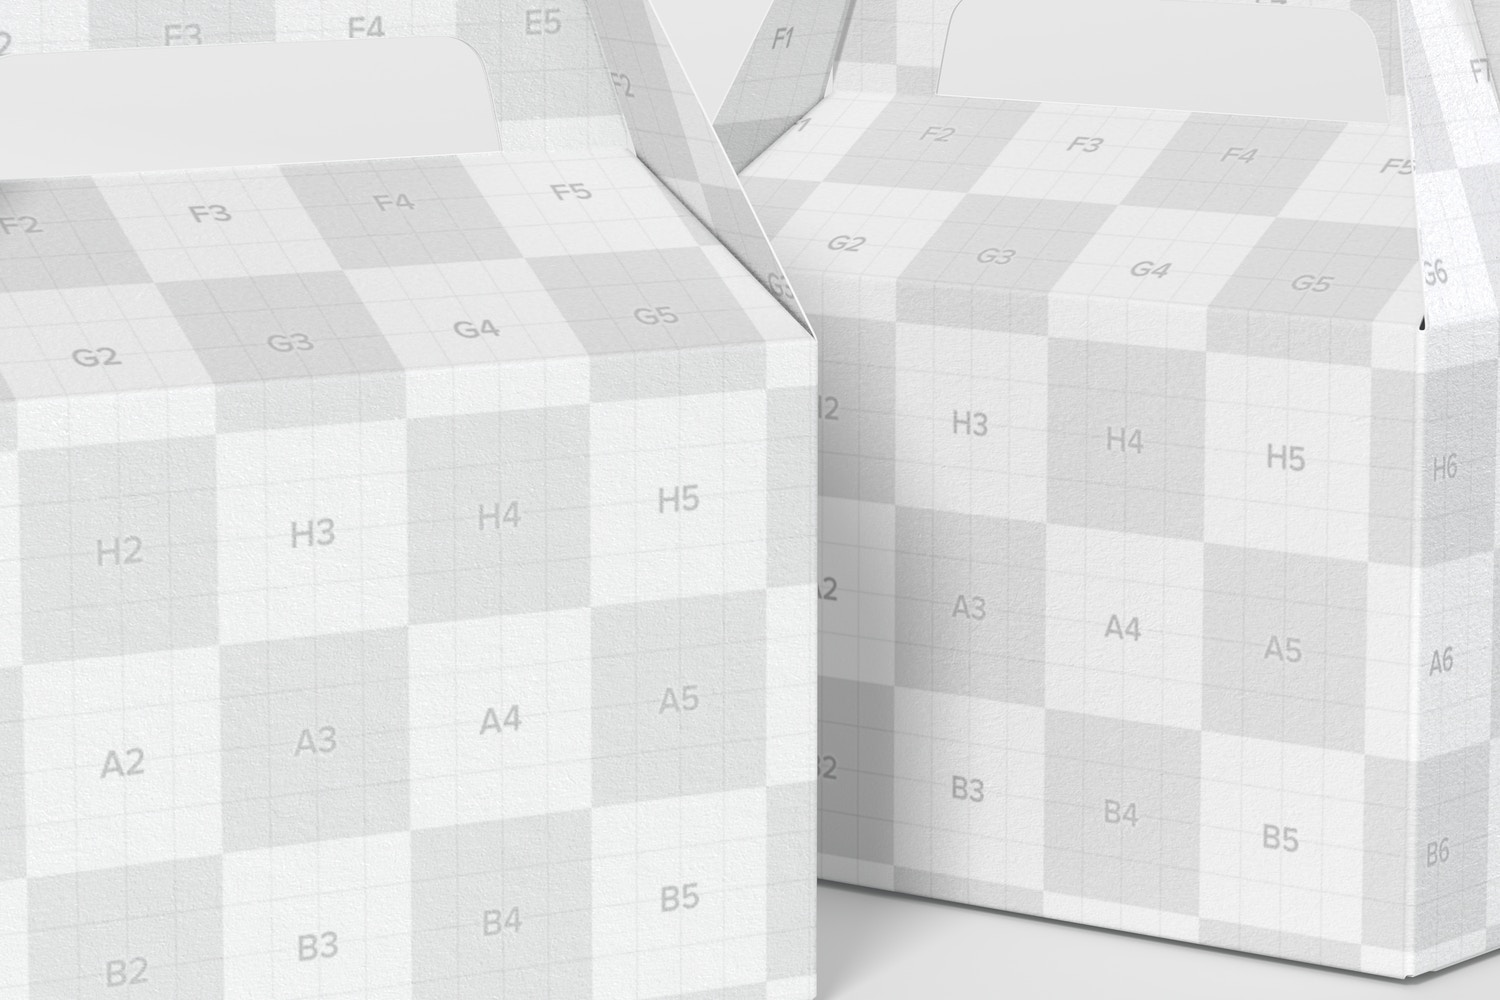 Your packaging design will look amazing thanks to the composition of this scene.